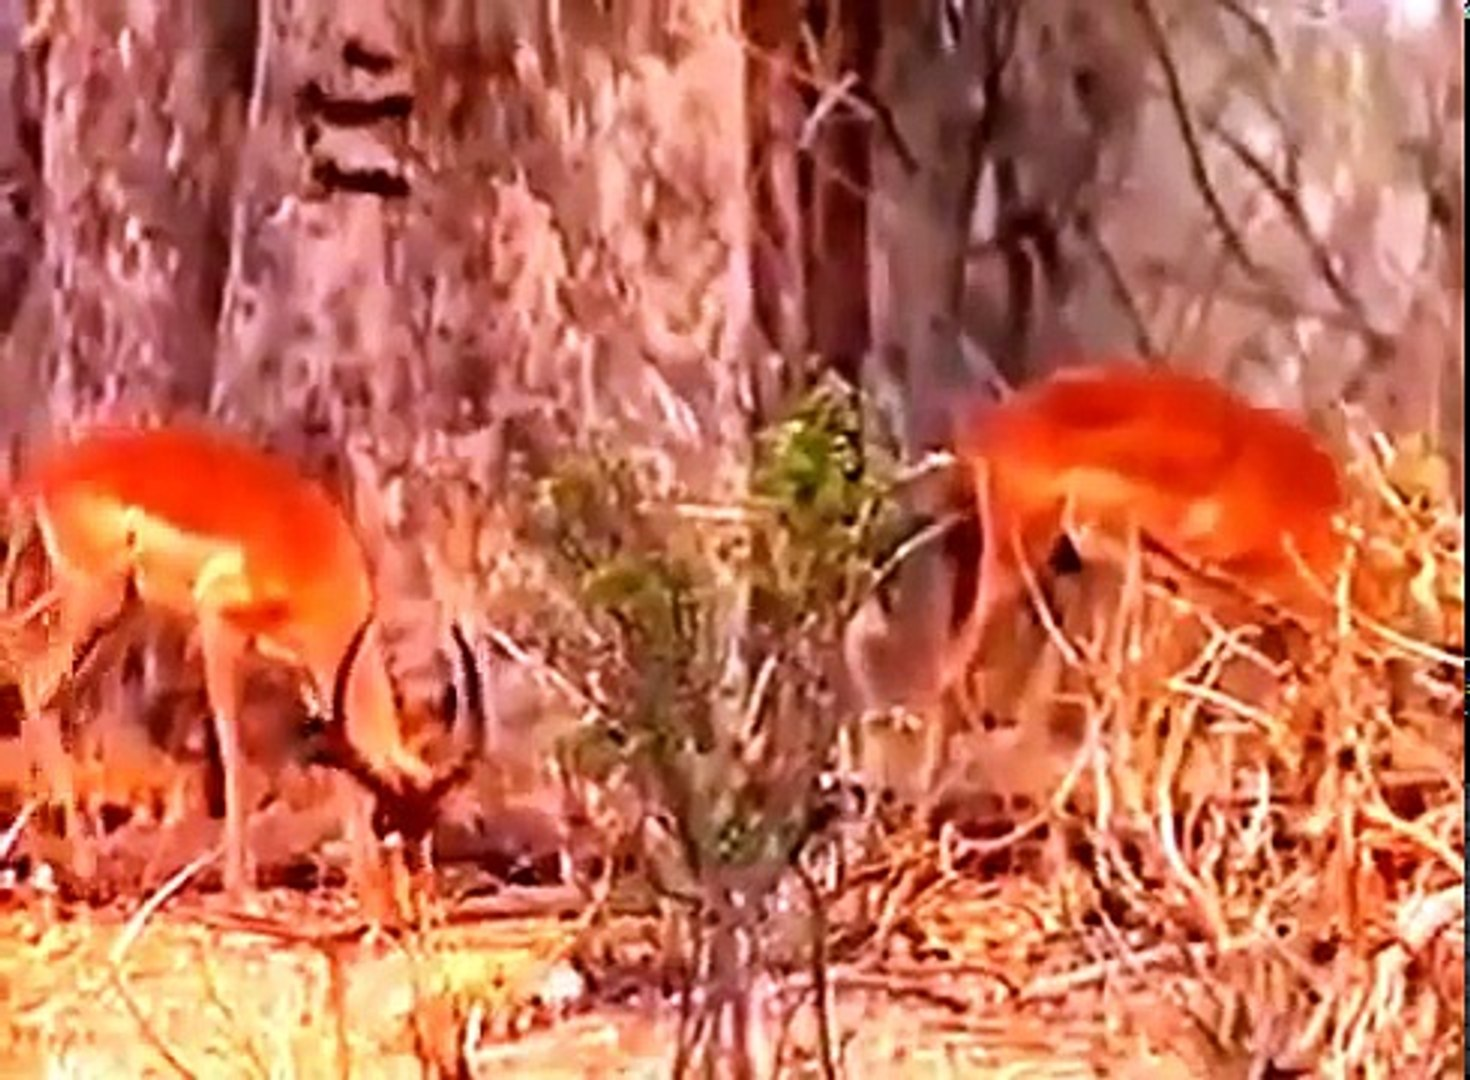 The Fight For Survival Africa Wildlife Documentary , Cinema Movies Tv FullHd Action Comedy Hot 2017